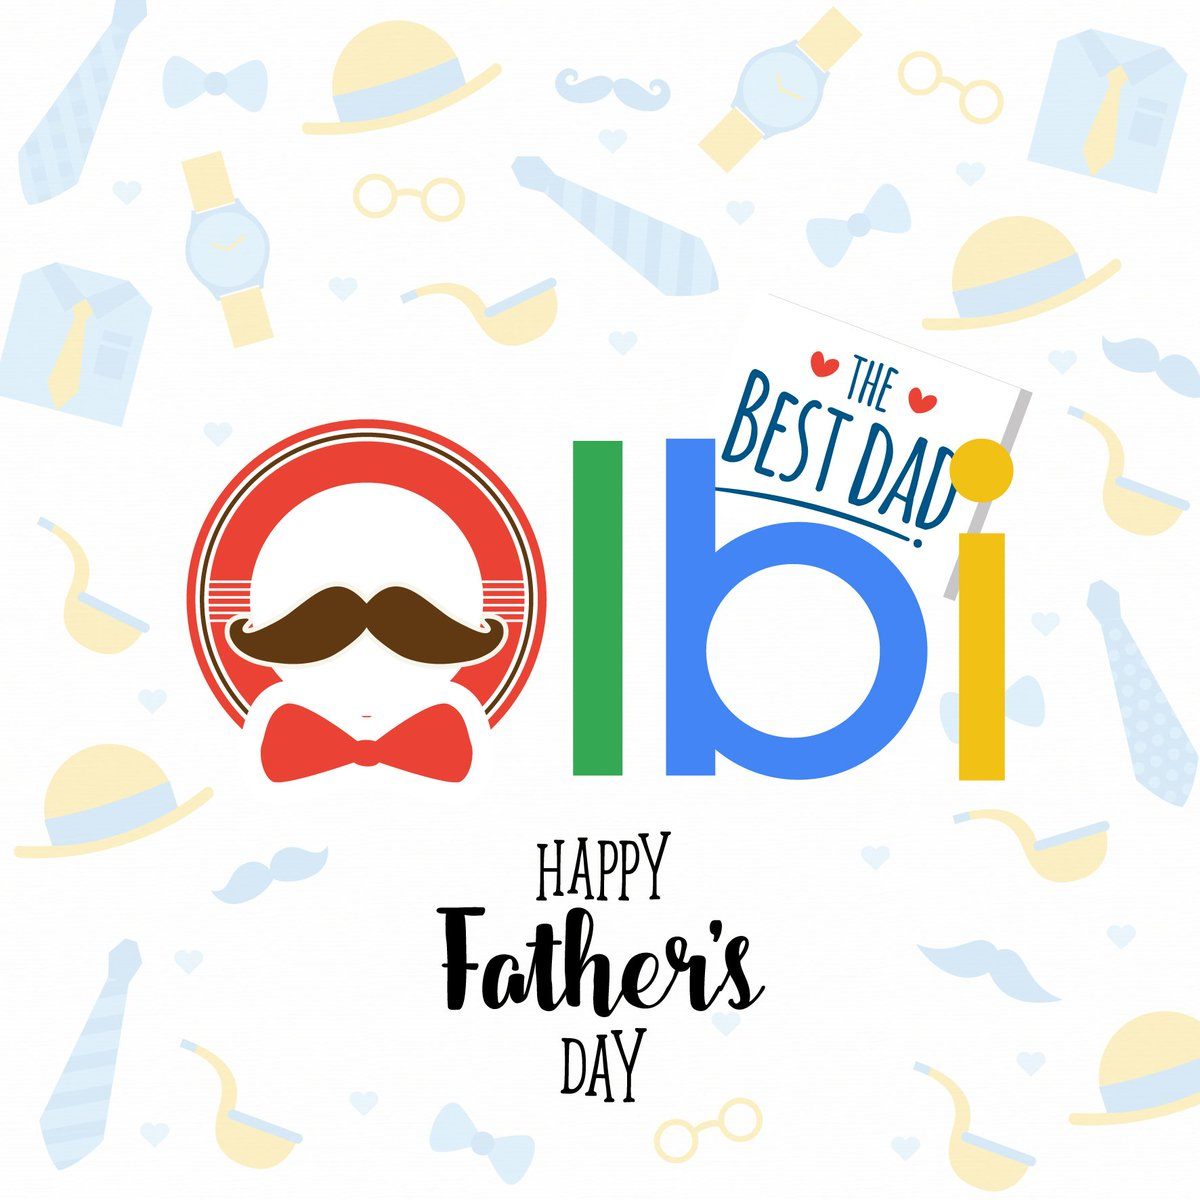 My dad is stronger than your dad! بييّ اقوى من بيك! Happy father's Day!!!  #Olbi #OlbiLebanon #OnlineBusinessInformation #Greetings #دليل #وظائف #Business #Directory #Restaurants #Hotels #Spa #JobsLebanon #Recruitment #News #BusinessNews #Deals #Offers #happyfathersday #dad https://t.co/Cd3TYSMVut